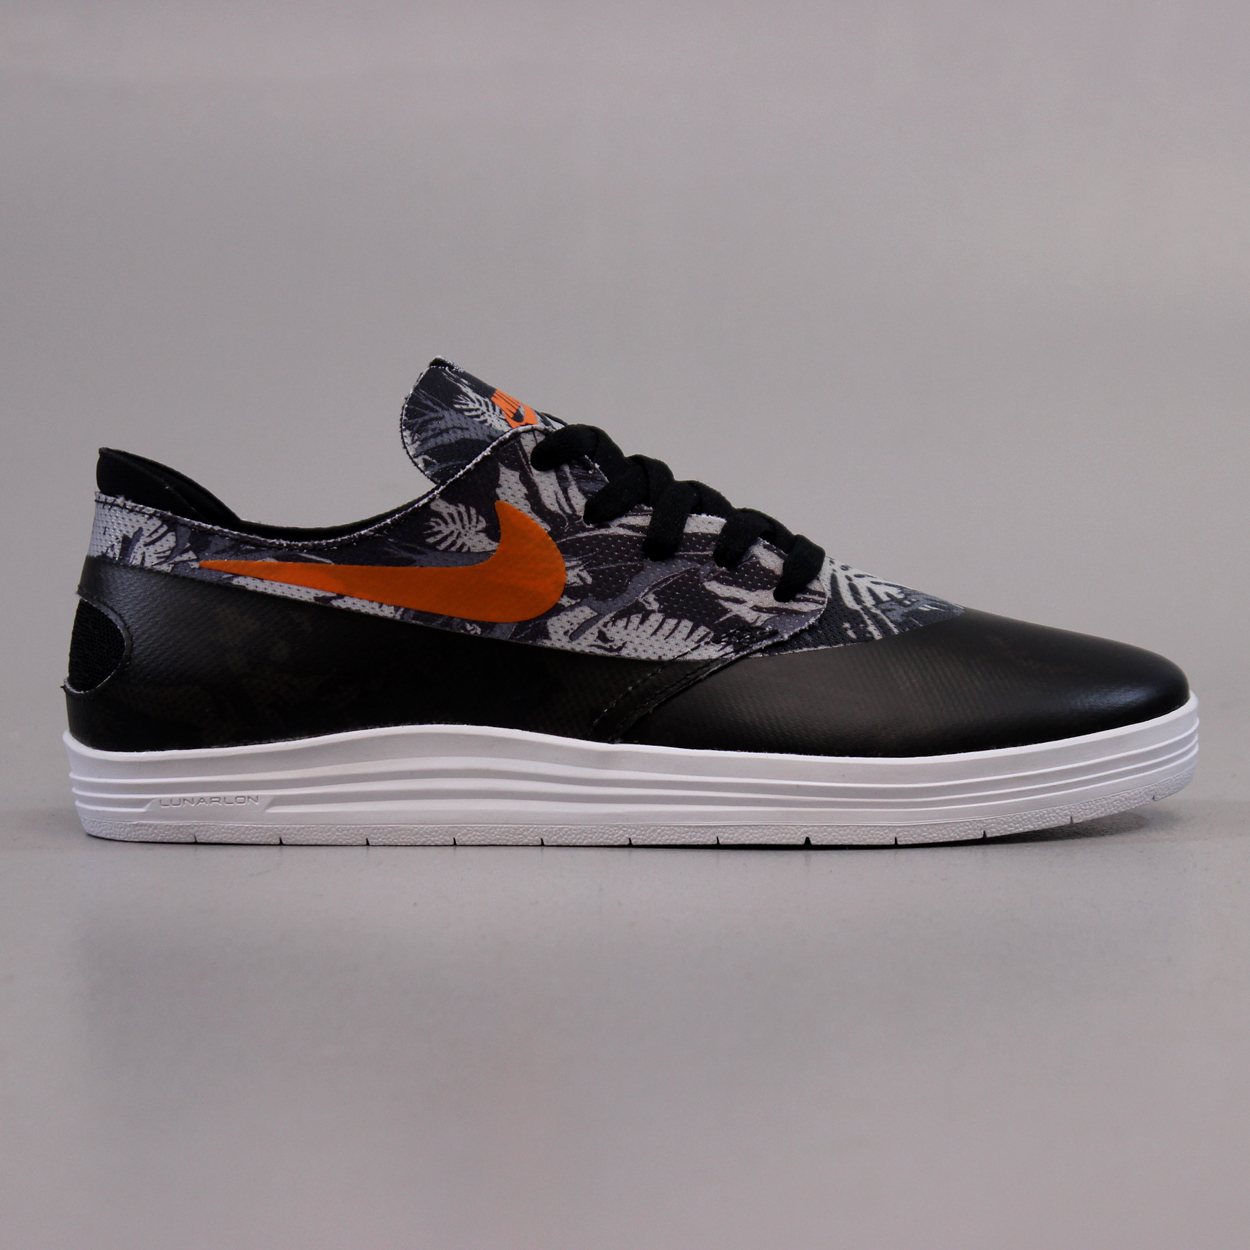 official photos 9b25f 59dfd Nike SB Lunar Oneshot World Cup Shoes Black Safety Orange